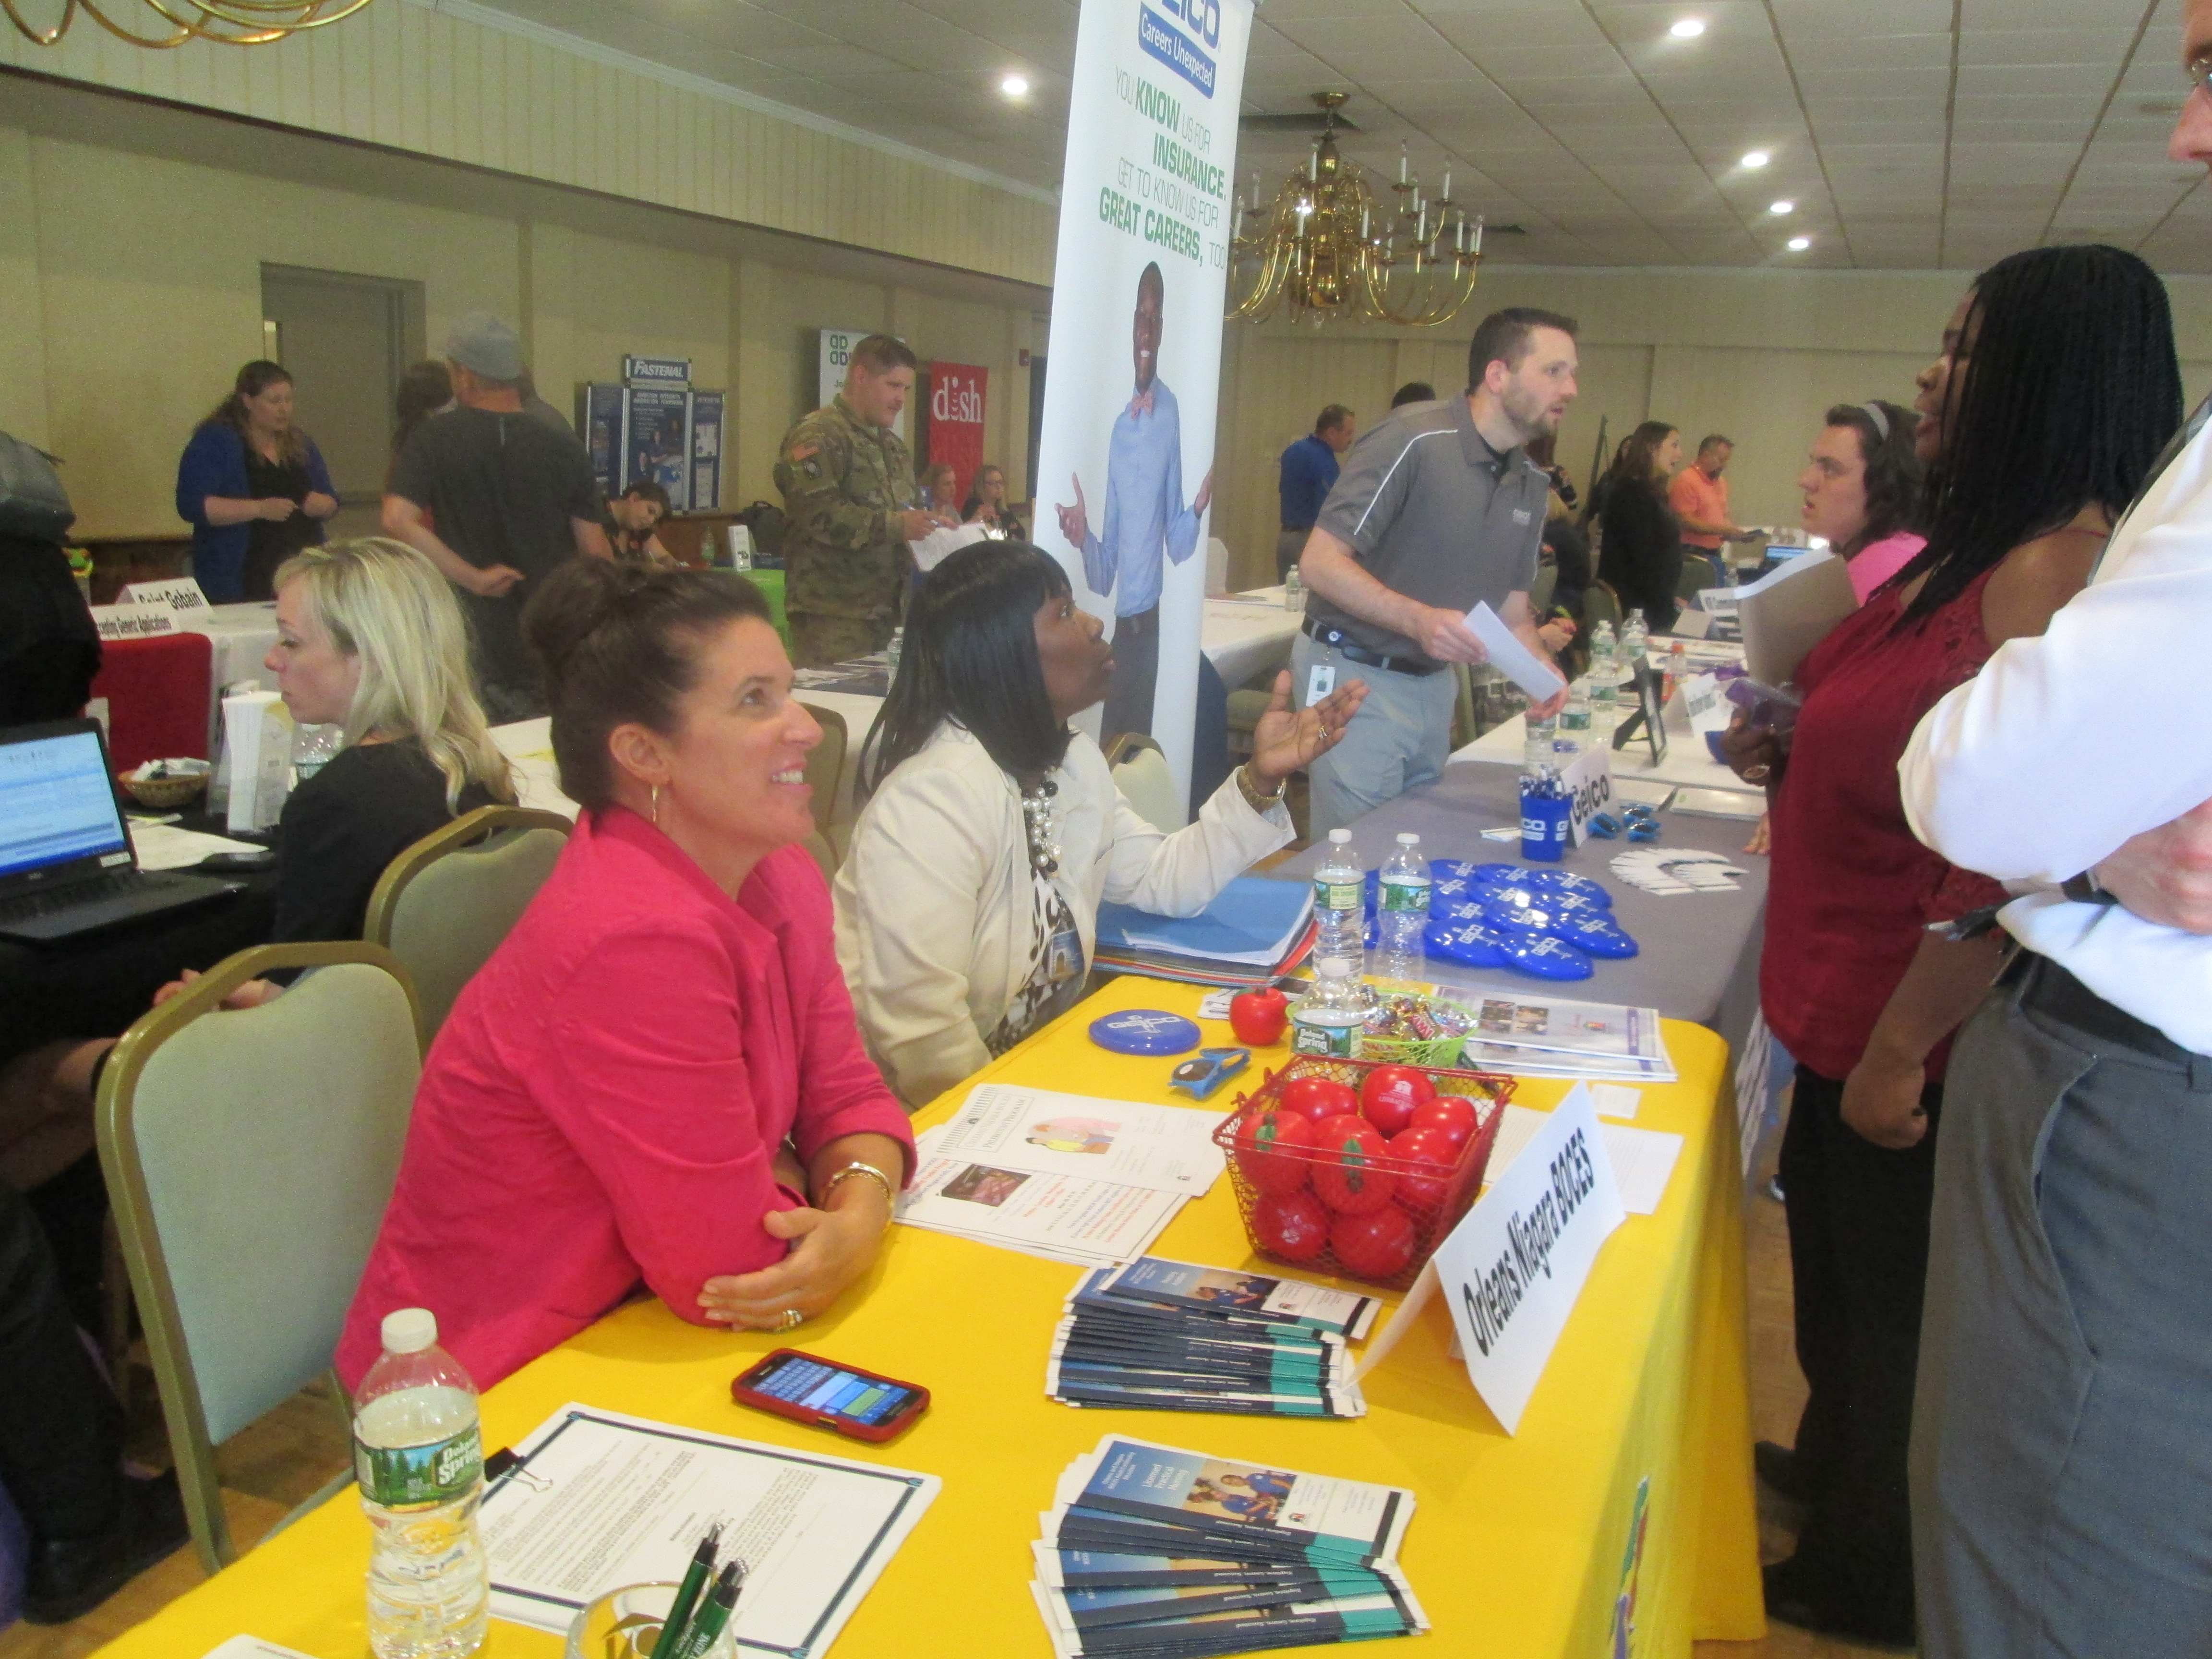 photo of career fair attendees talking with business representatives over table